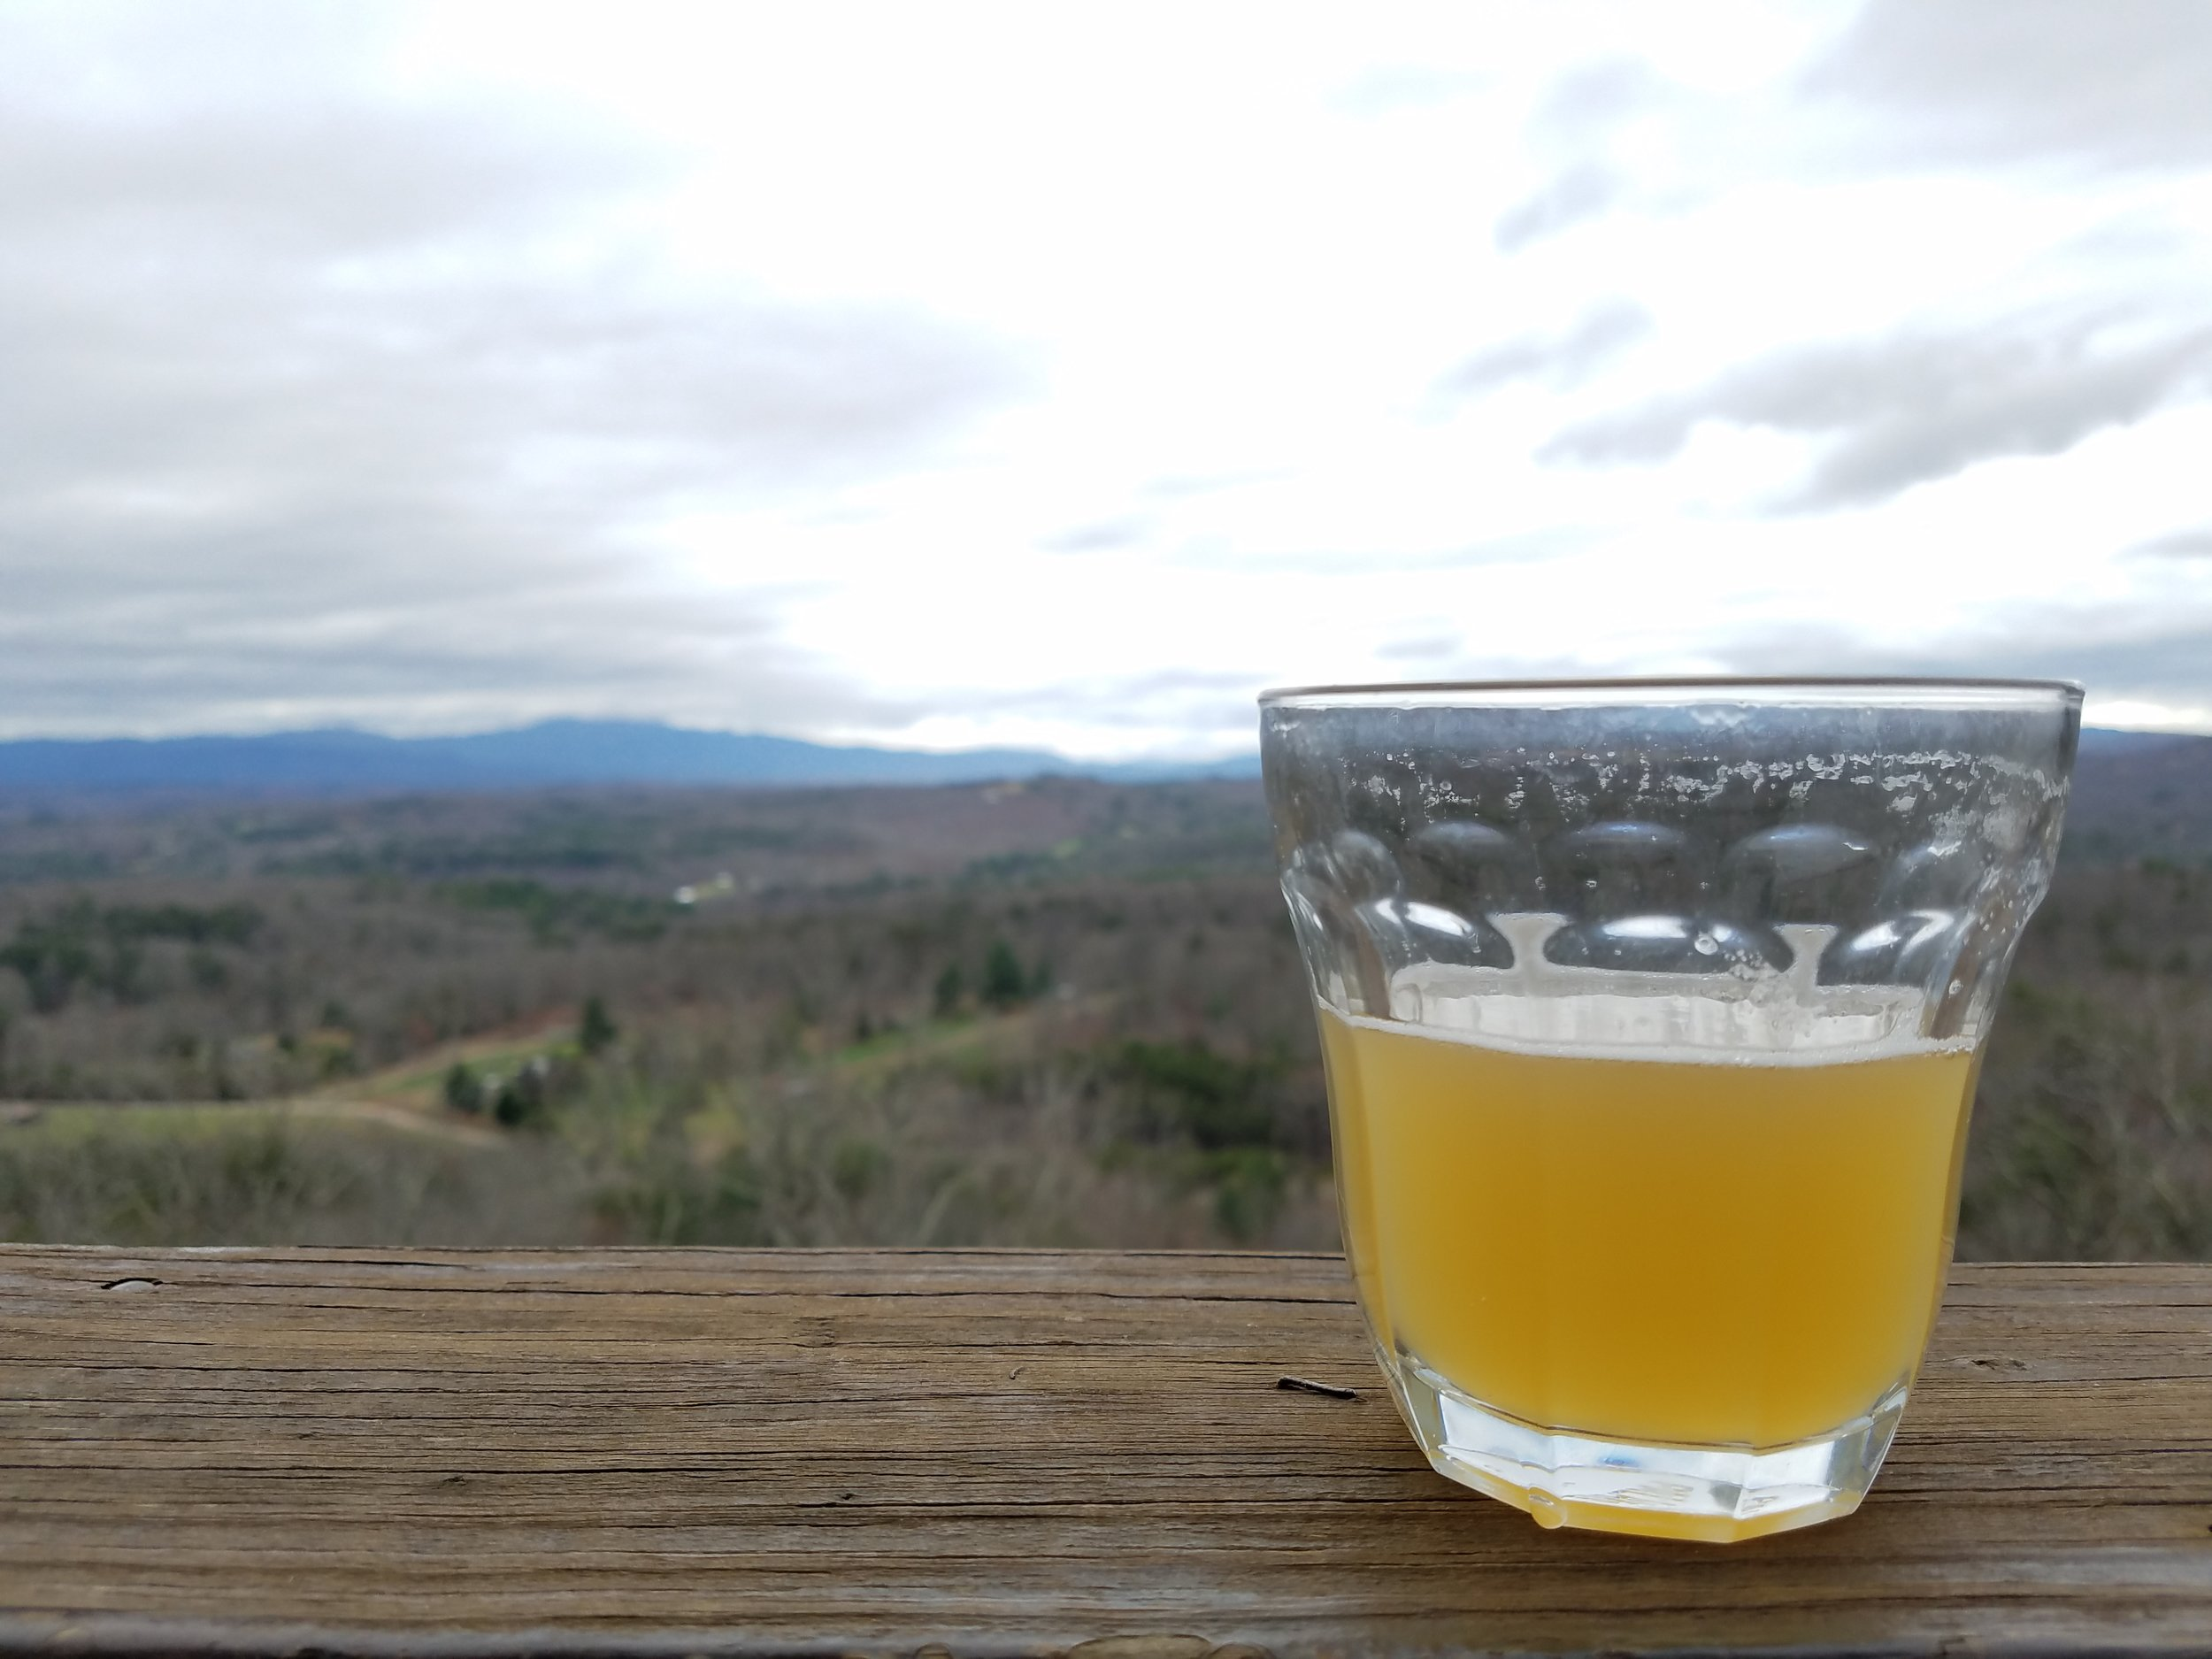 I am no photographer, but I would say this is one gorgeous shot of some grumpy old men beer.